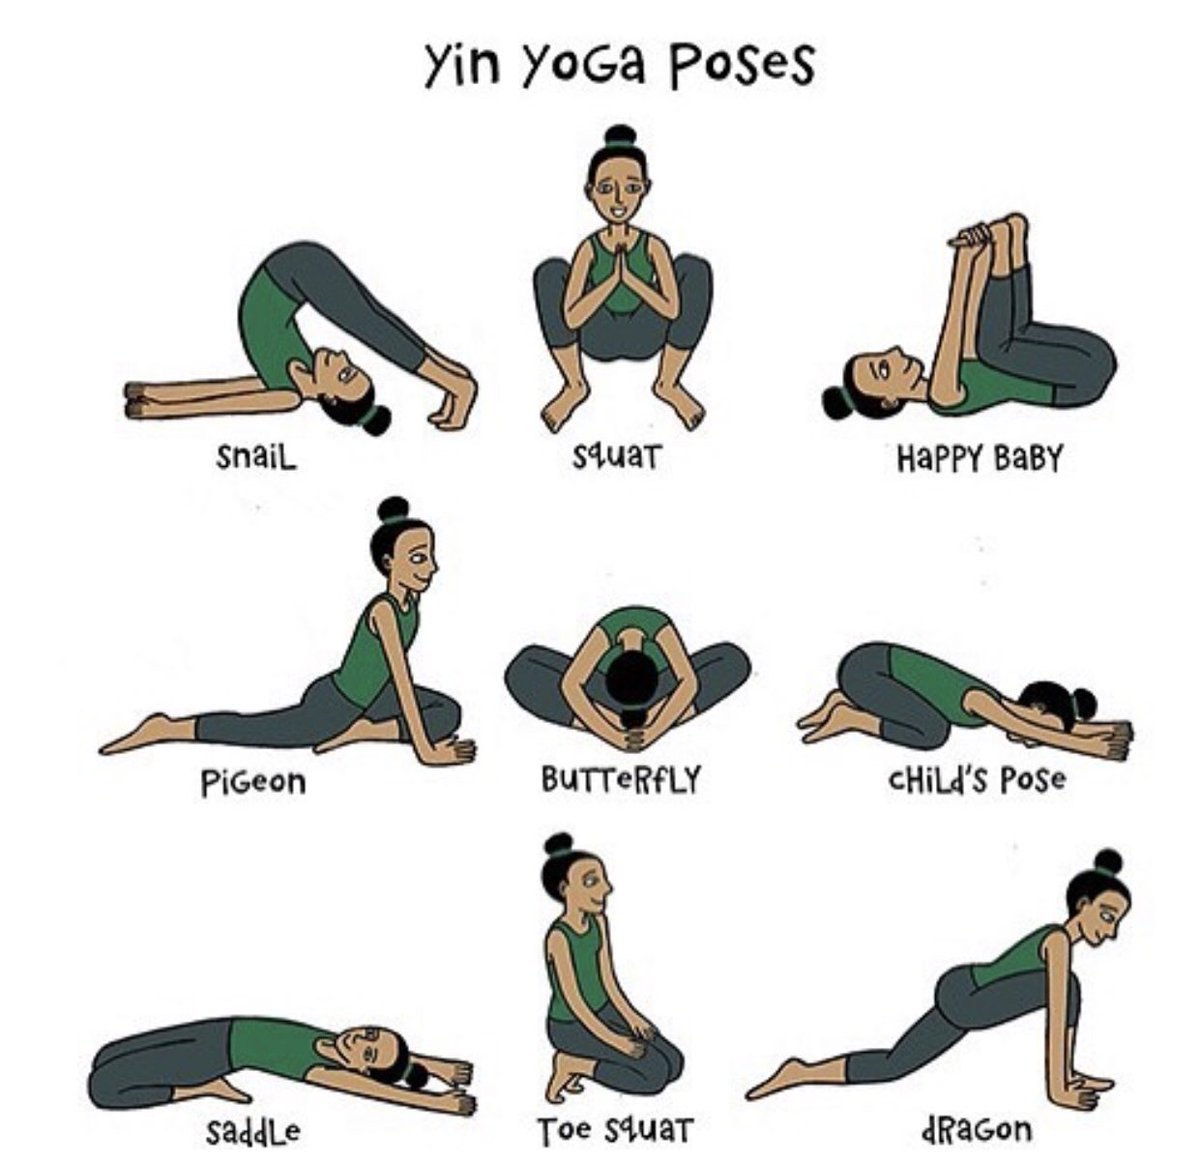 Yin Yoga Poses In Bed